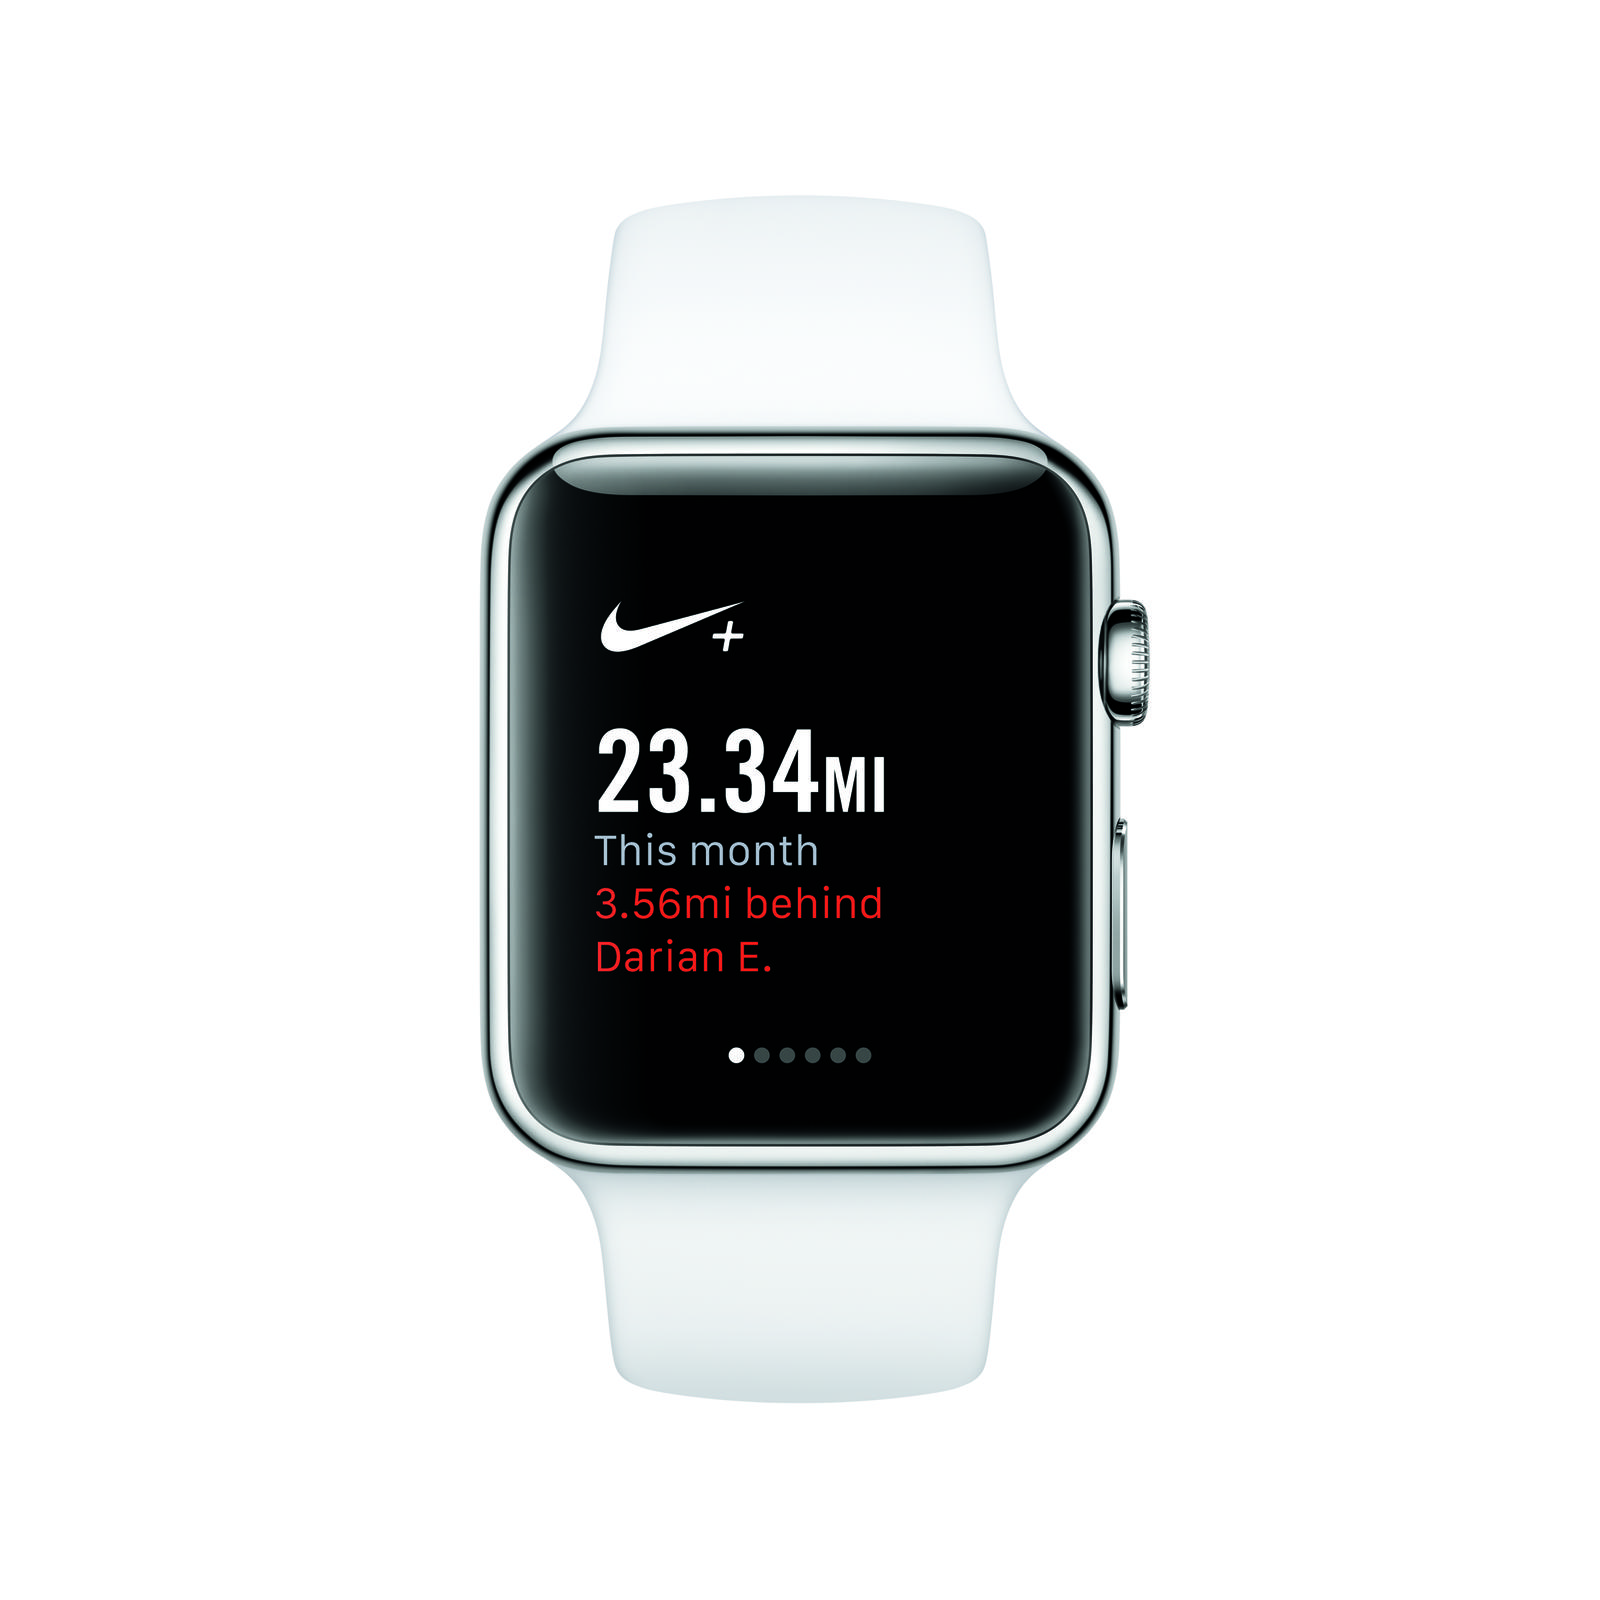 nike running app launches on apple watch nike news. Black Bedroom Furniture Sets. Home Design Ideas